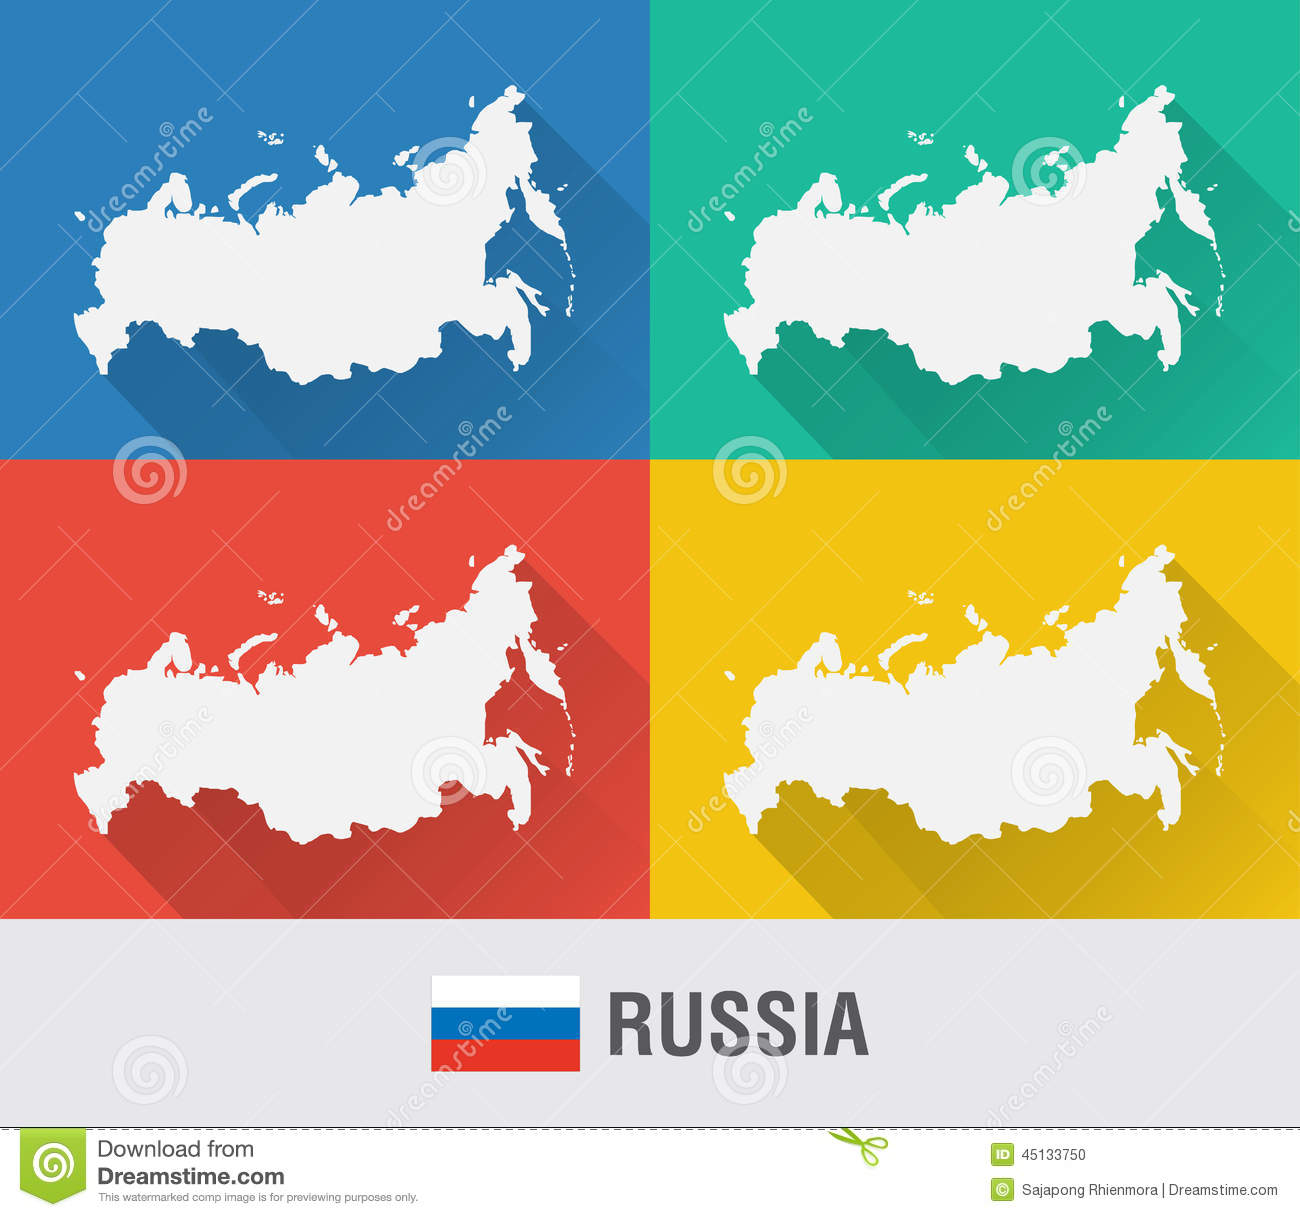 Russia World Map In Flat Style With Colors Stock Vector Image - Russia world map